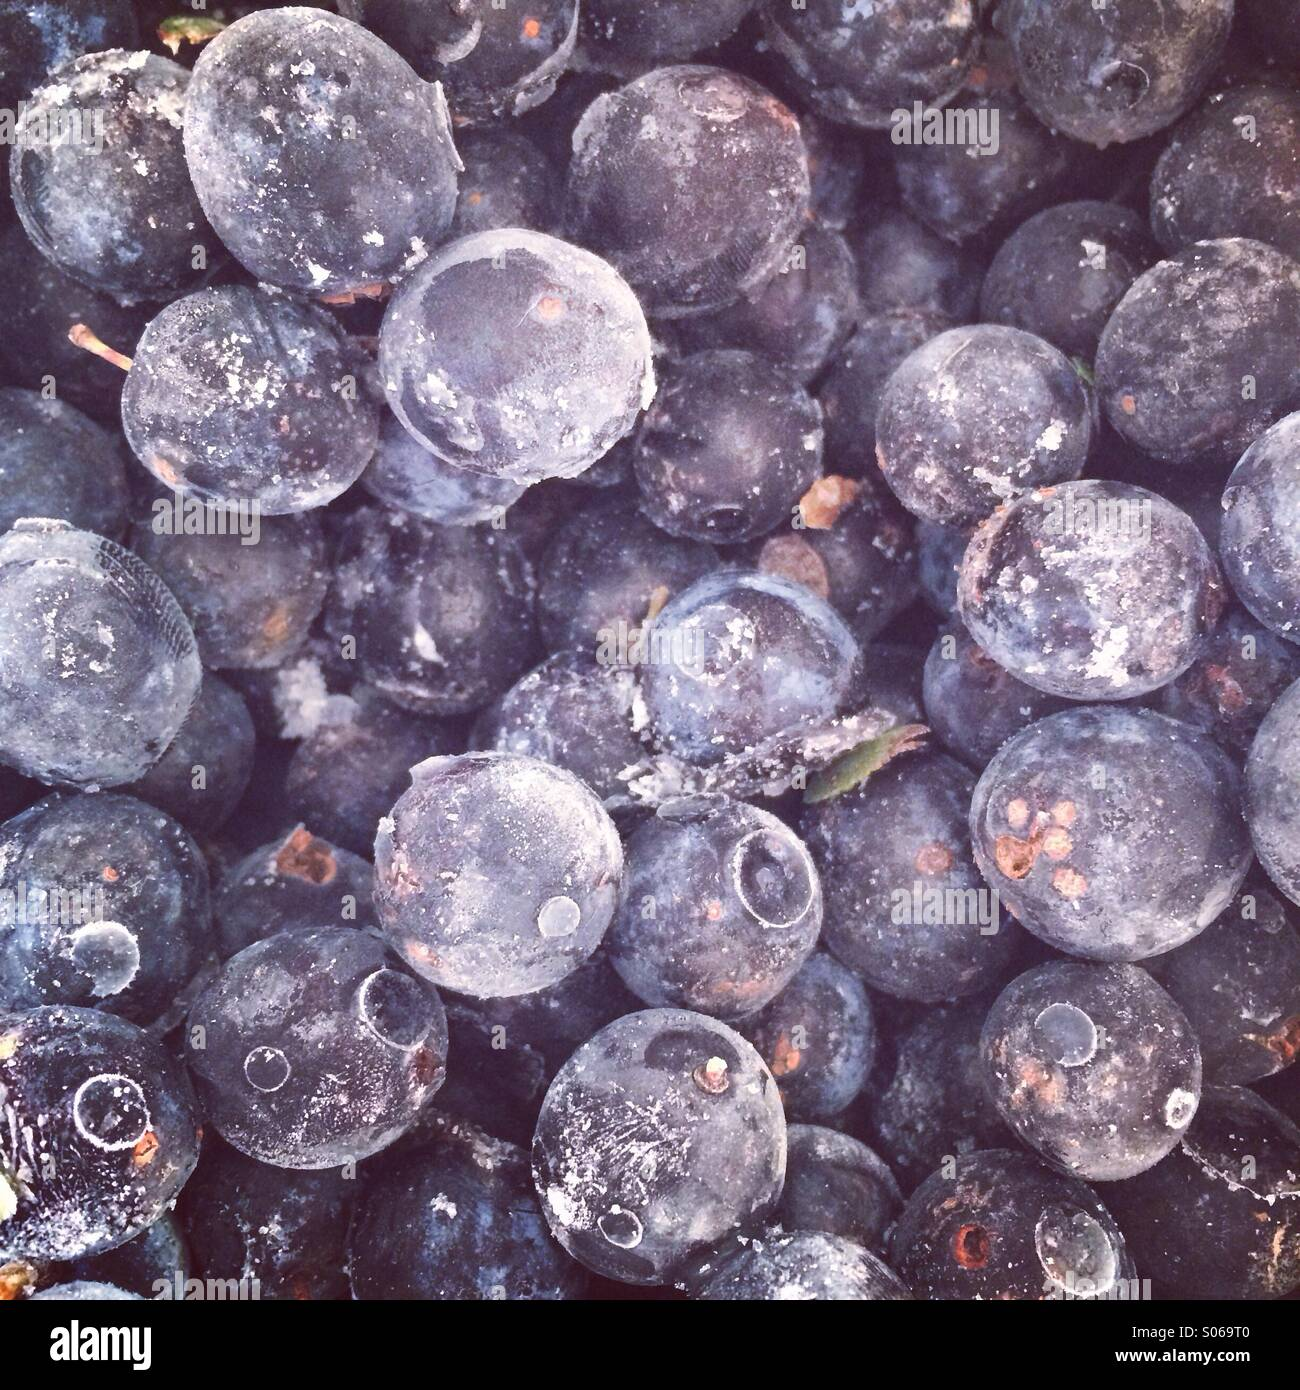 Frozen Sloes ready for Gin - Stock Image